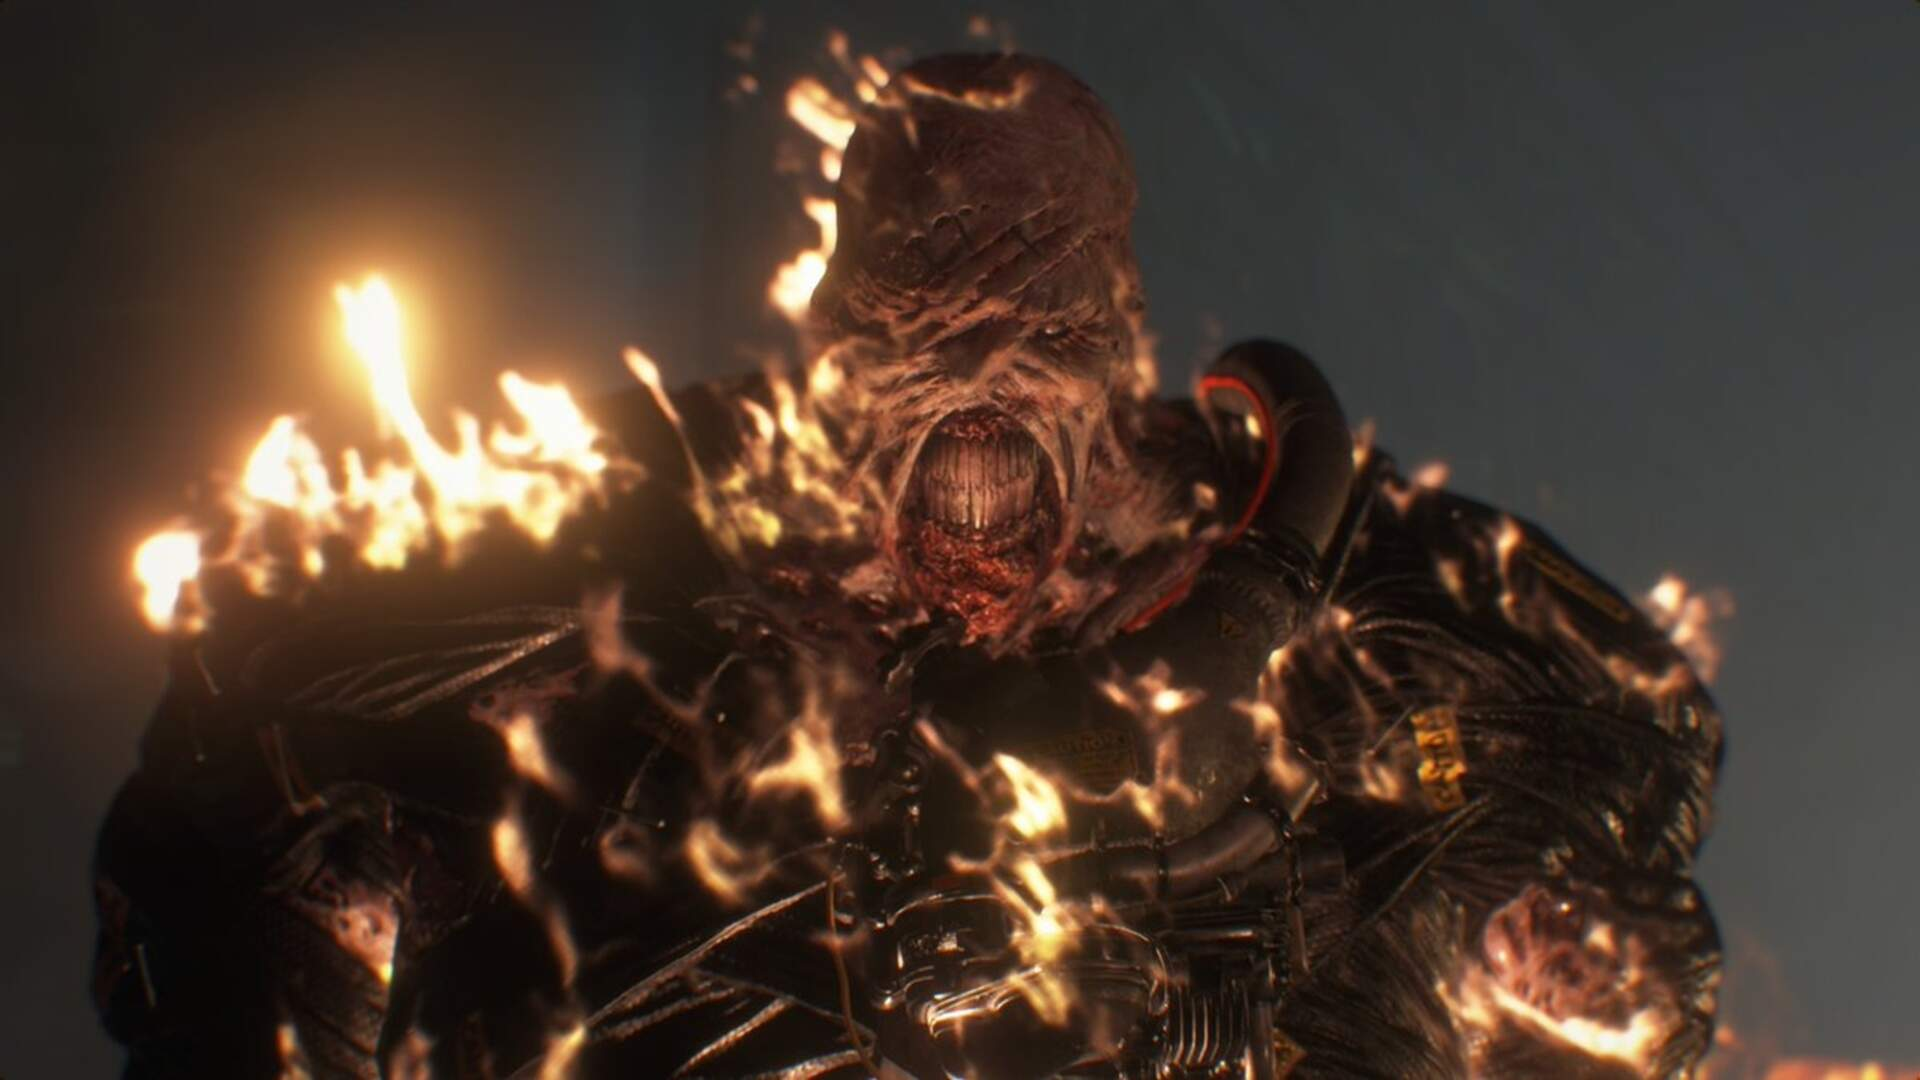 Resident Evil 3 Remake's Nemesis Wears a Mask, Leading to Some Interesting Theories